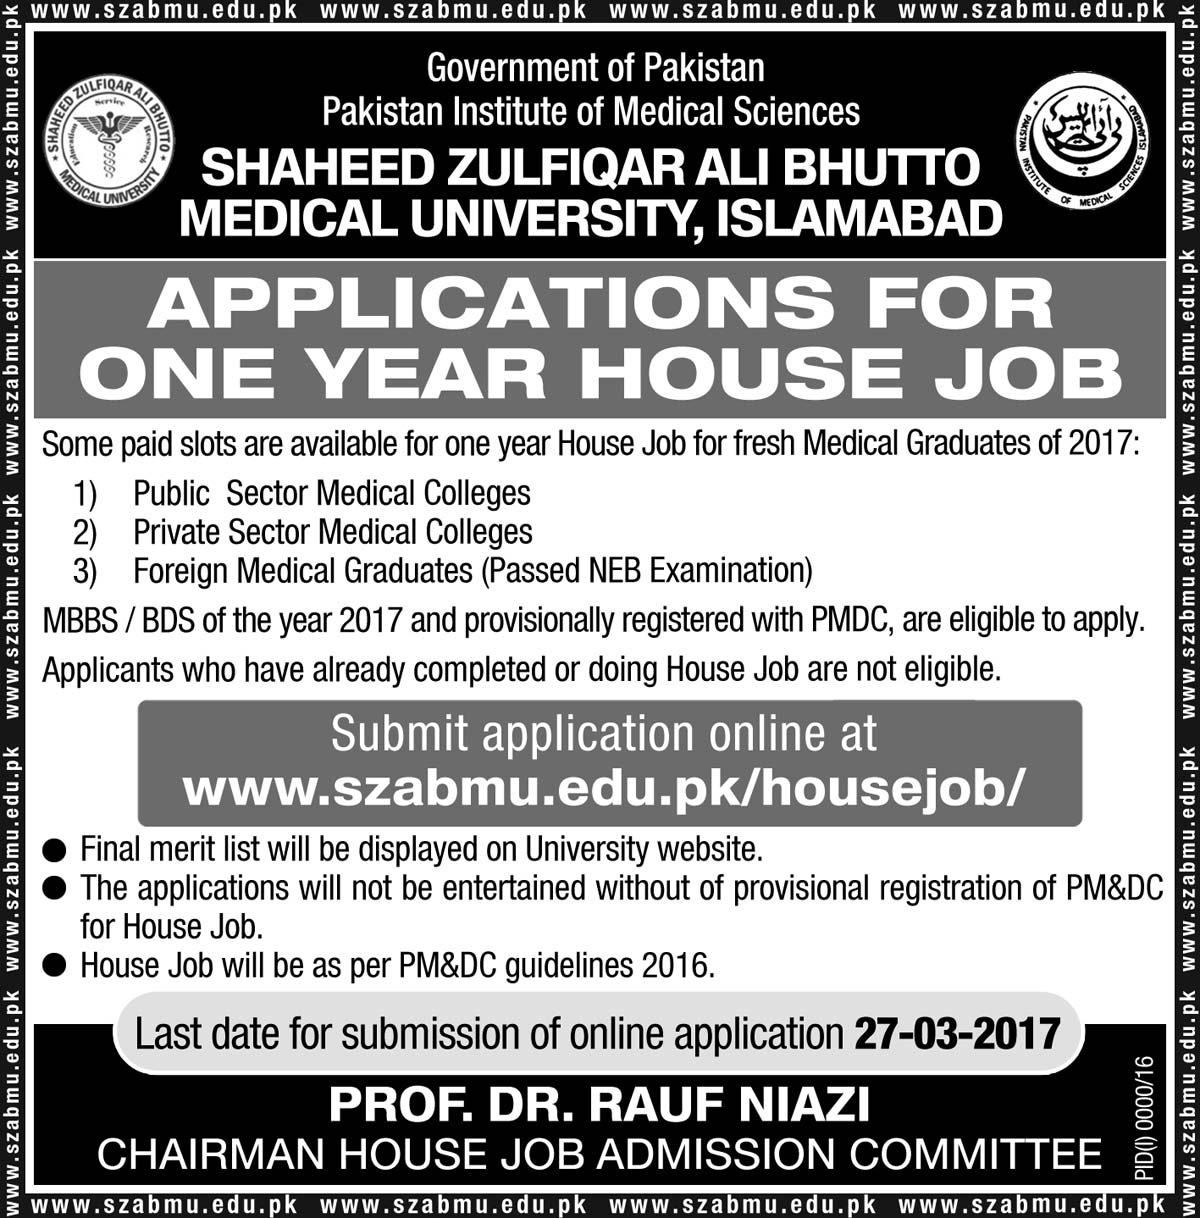 Application for one year House Job for fresh Medical Graduate of 2017